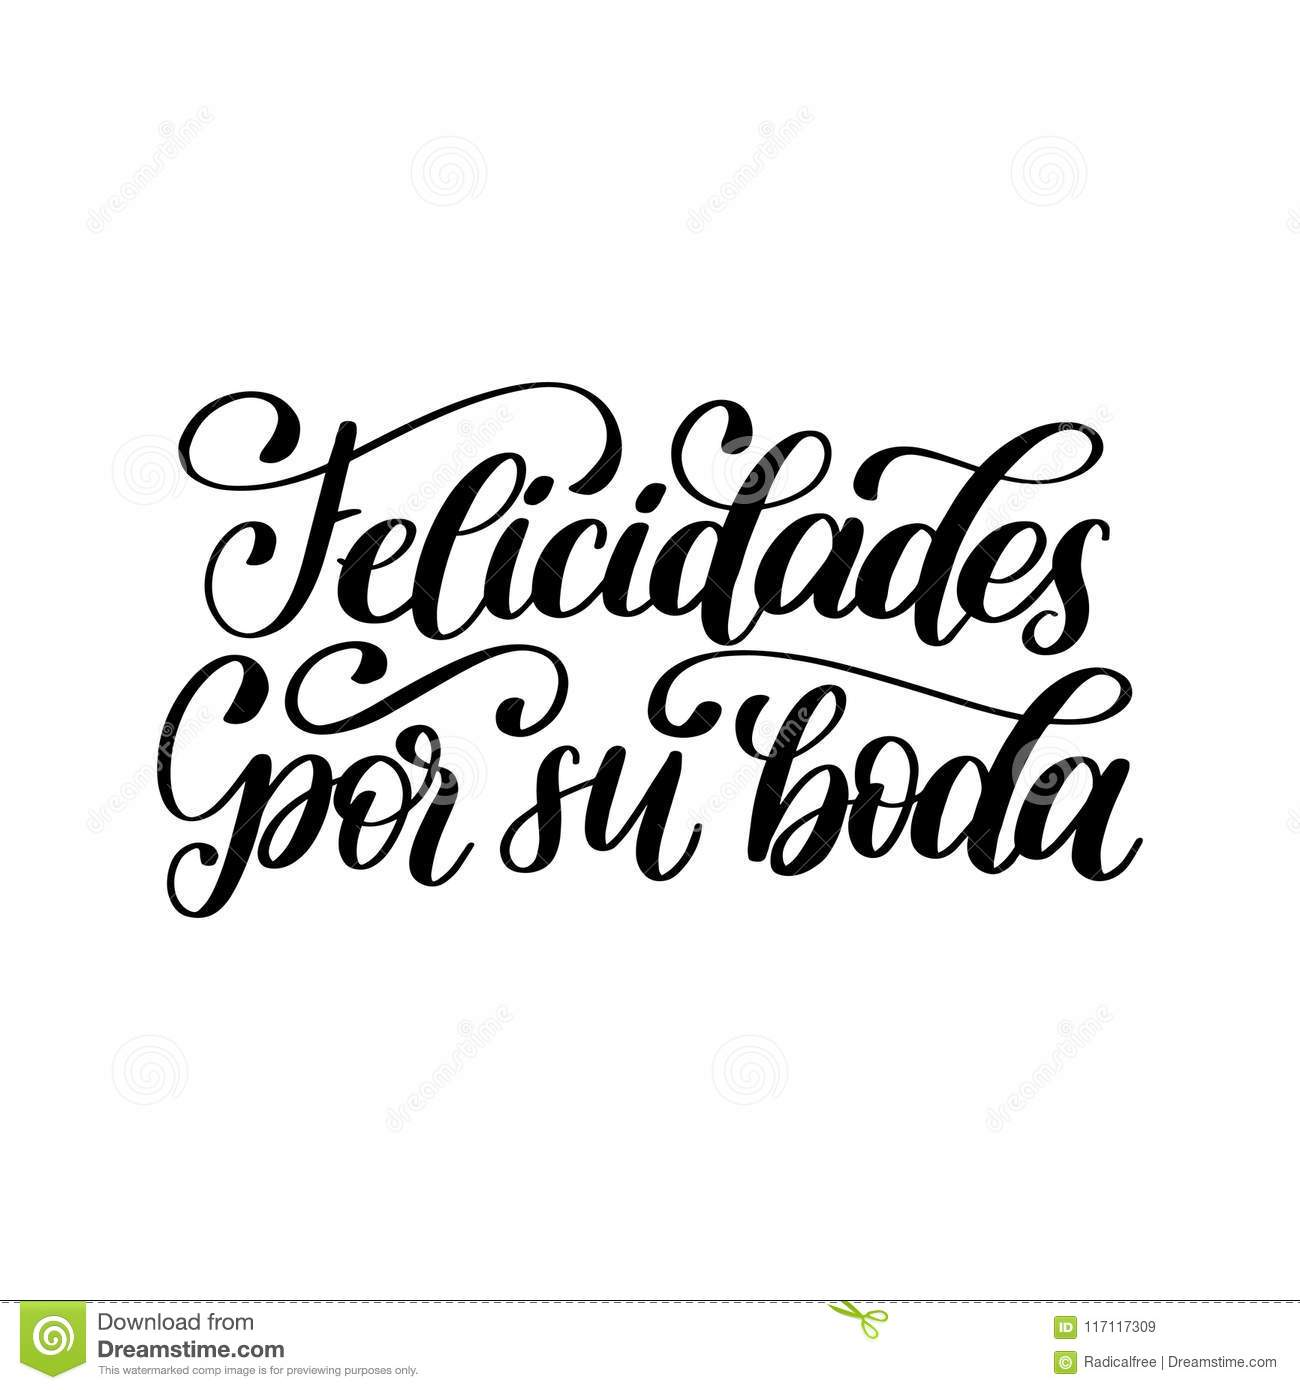 felicidades por su boda translated from spanish handwritten phrase congratulations for your wedding on white background